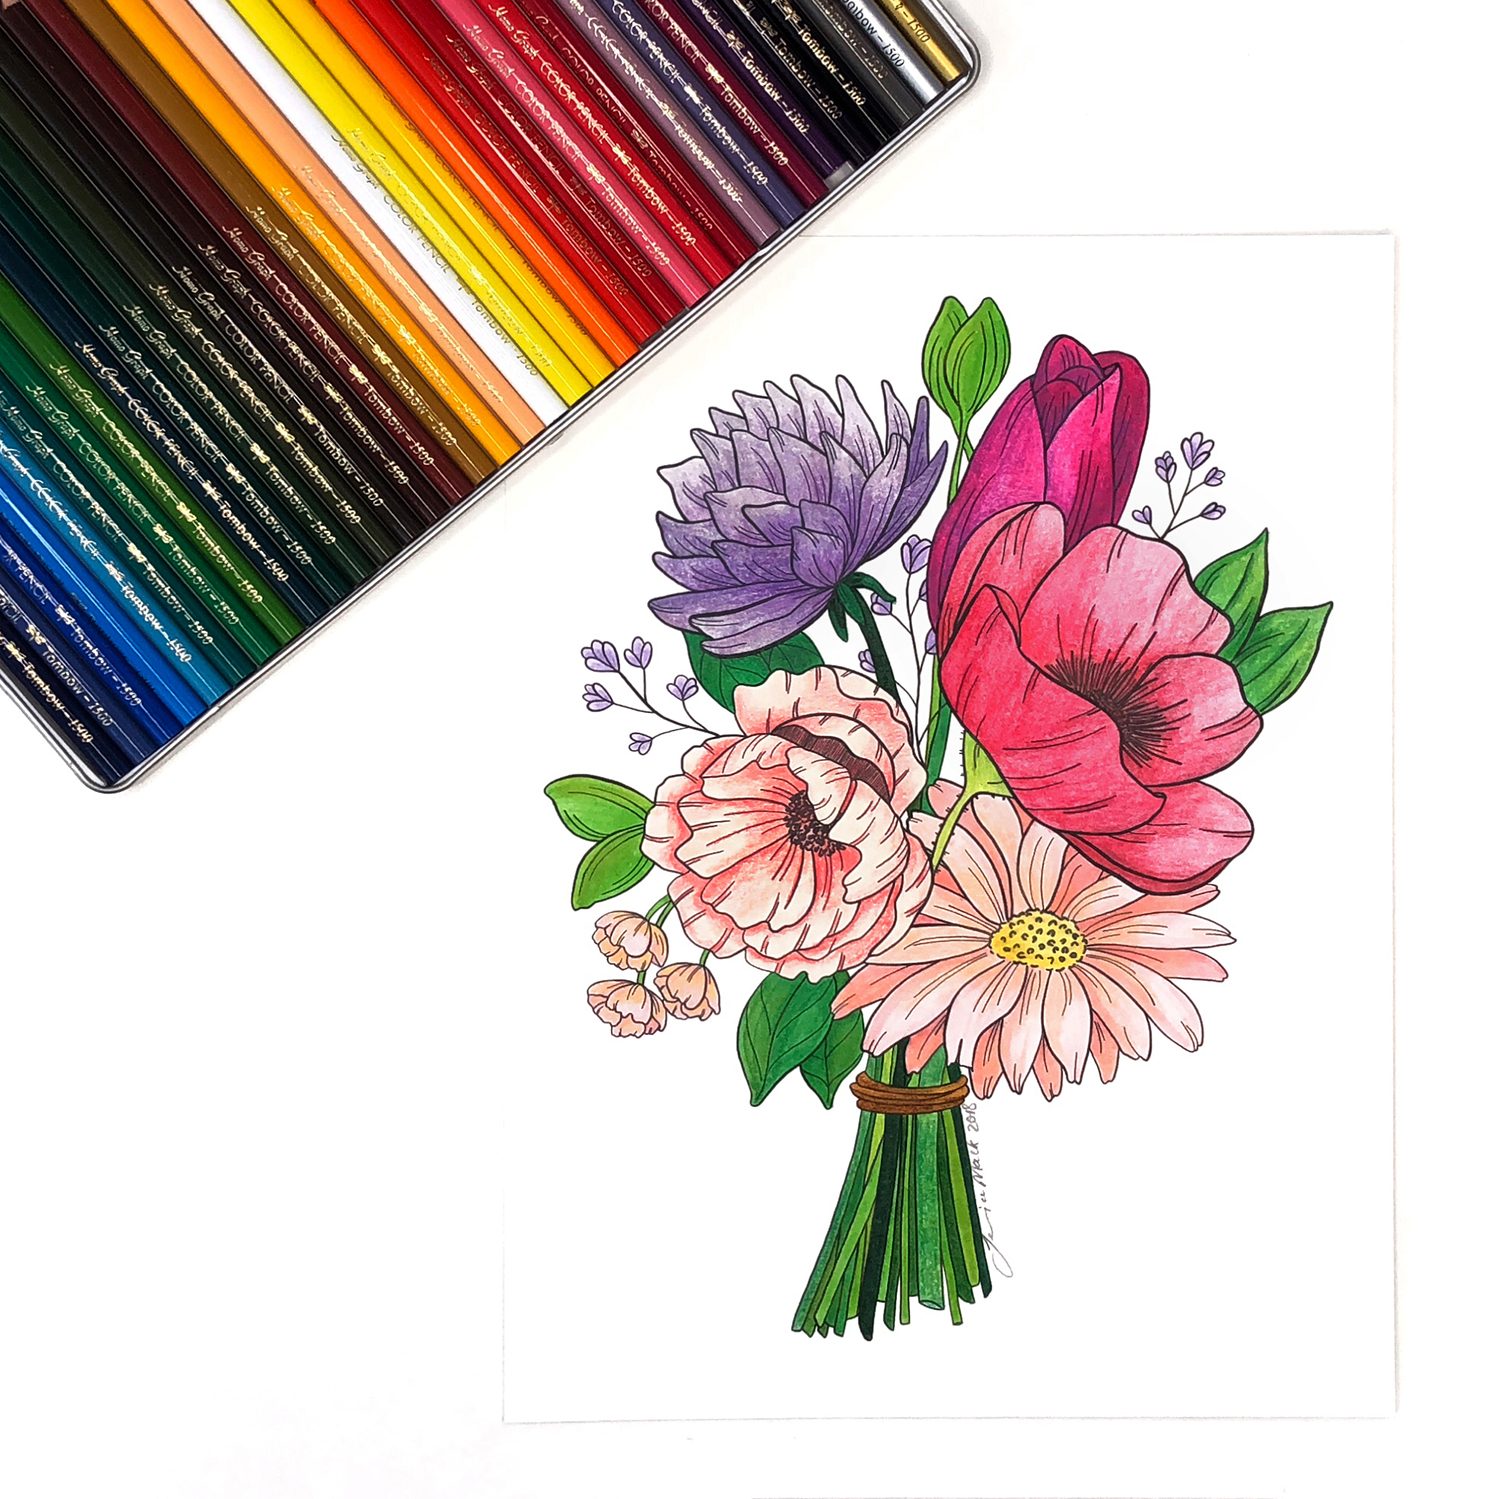 3 Tips for Using Colored Pencils by Jessica Mack of BrownPaperBunny